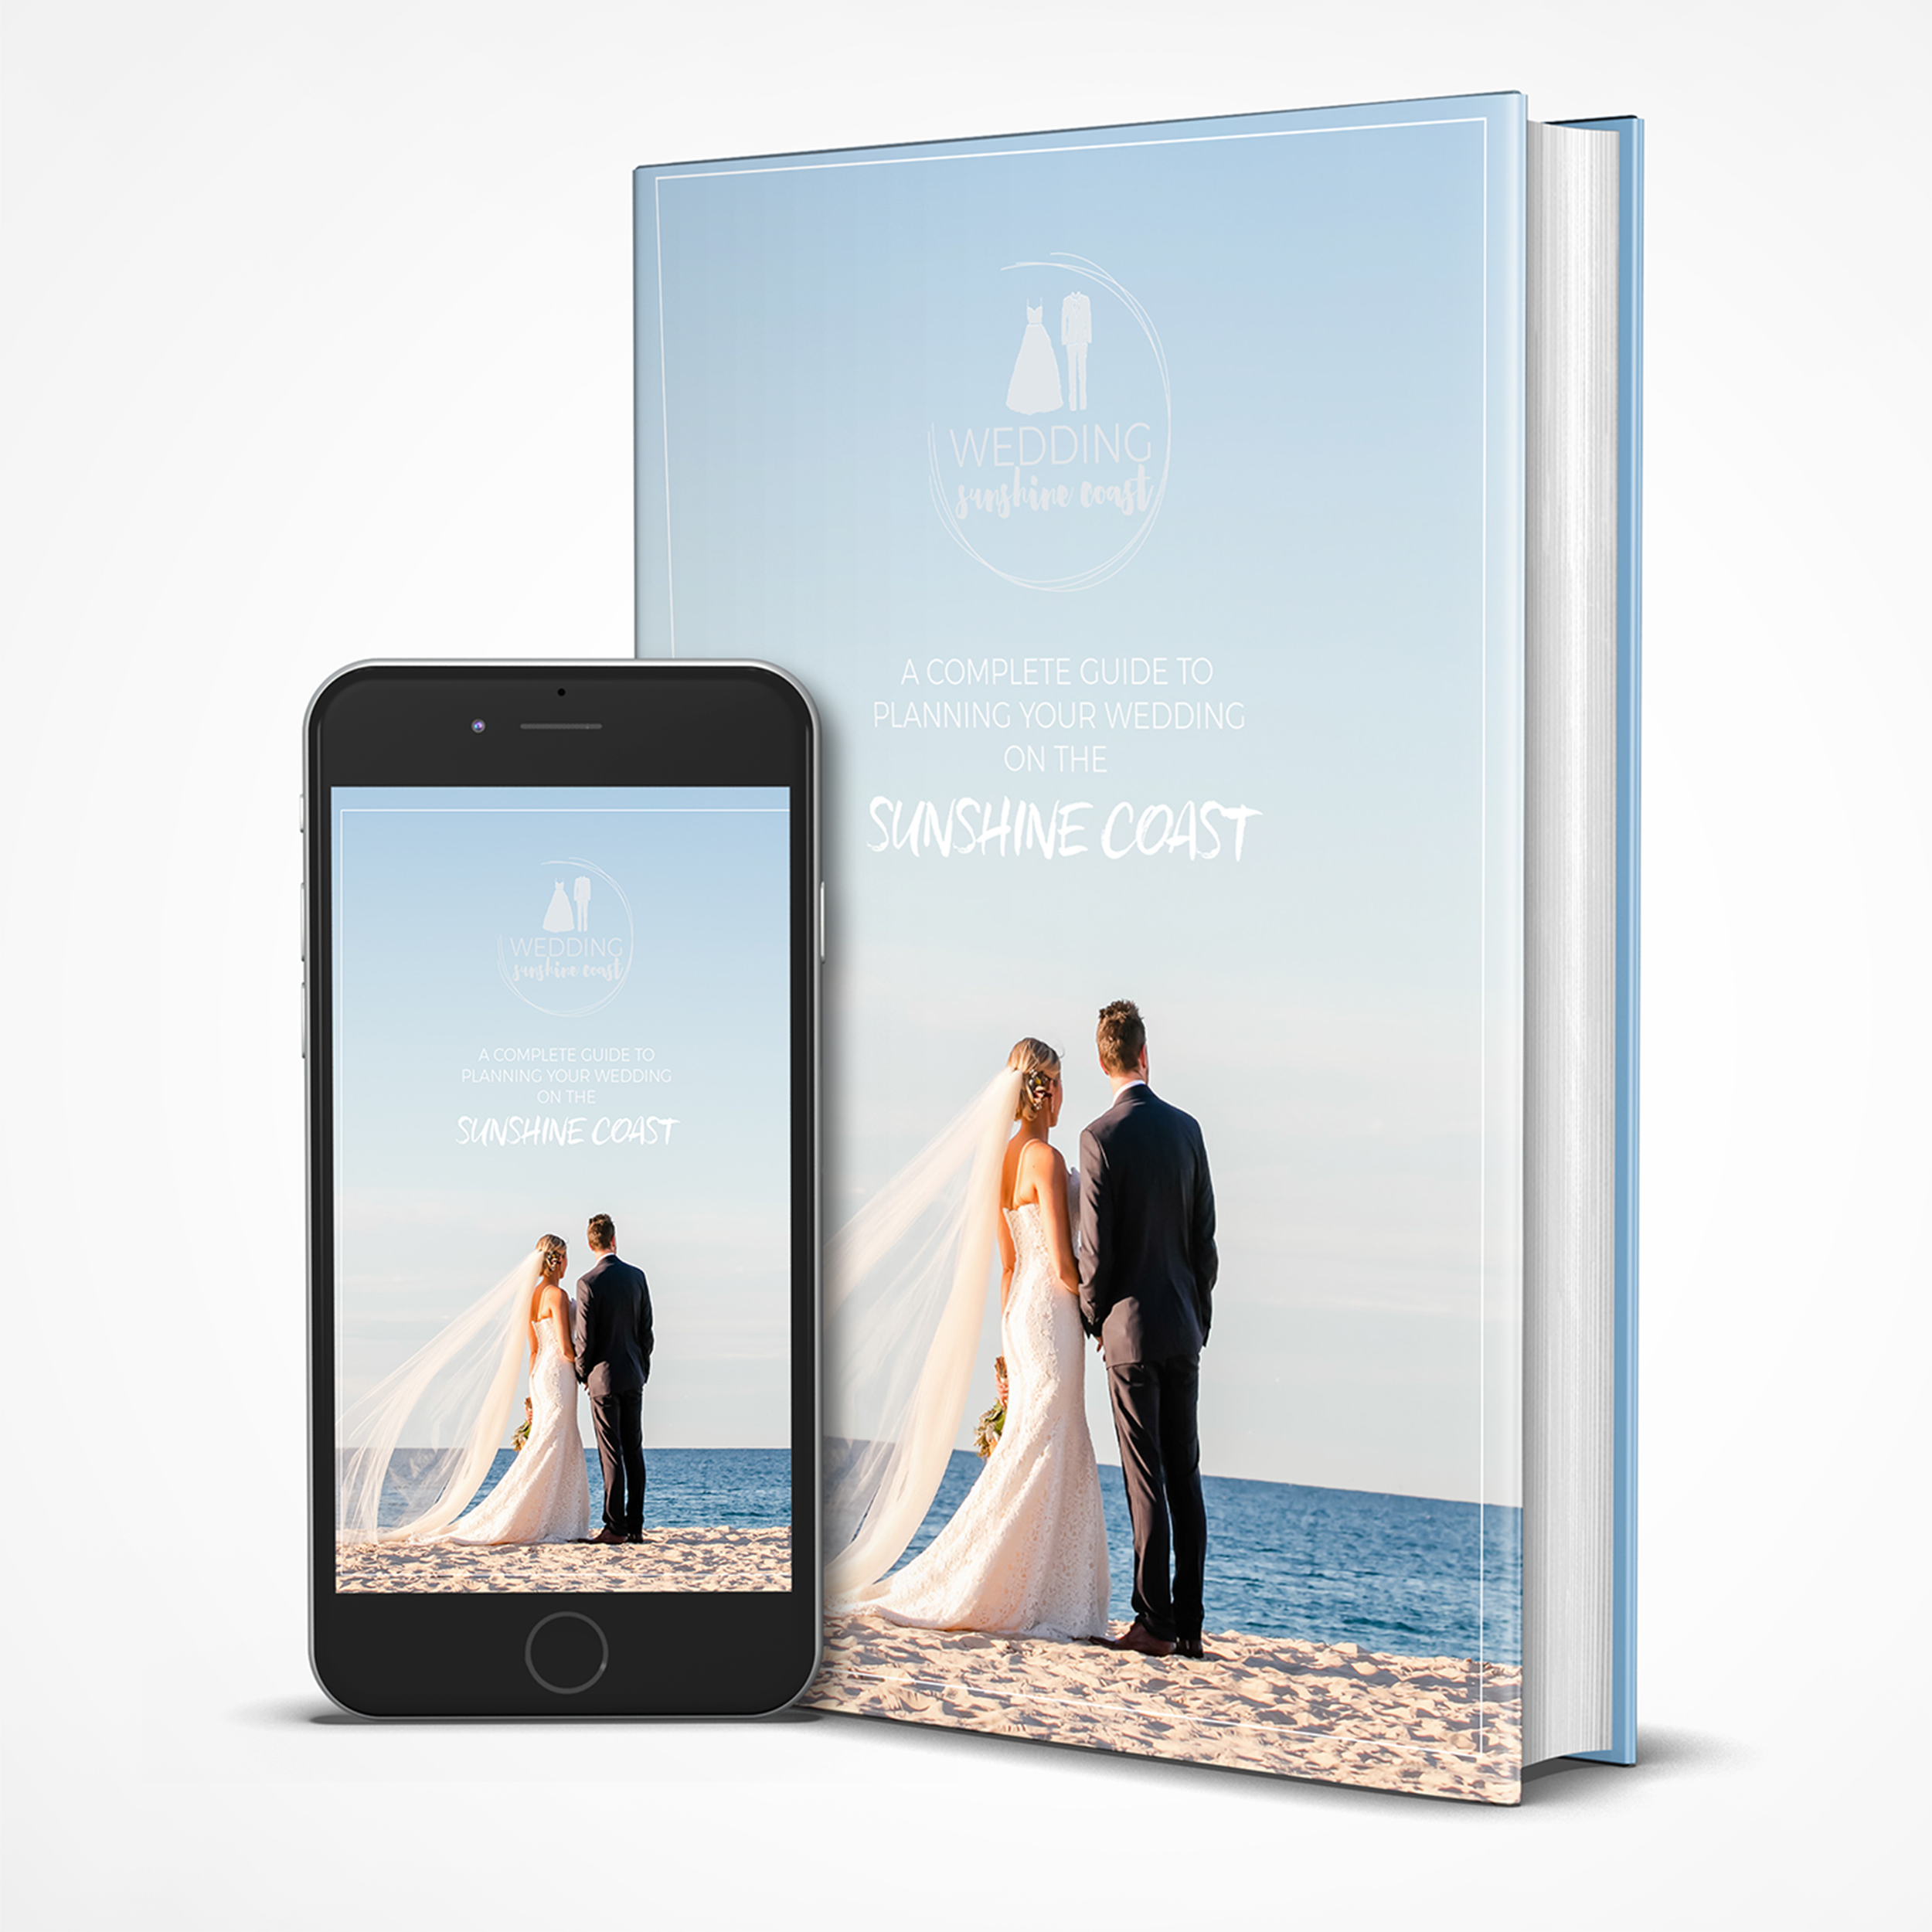 a complete guide to planning your wedding on the sunshine coast